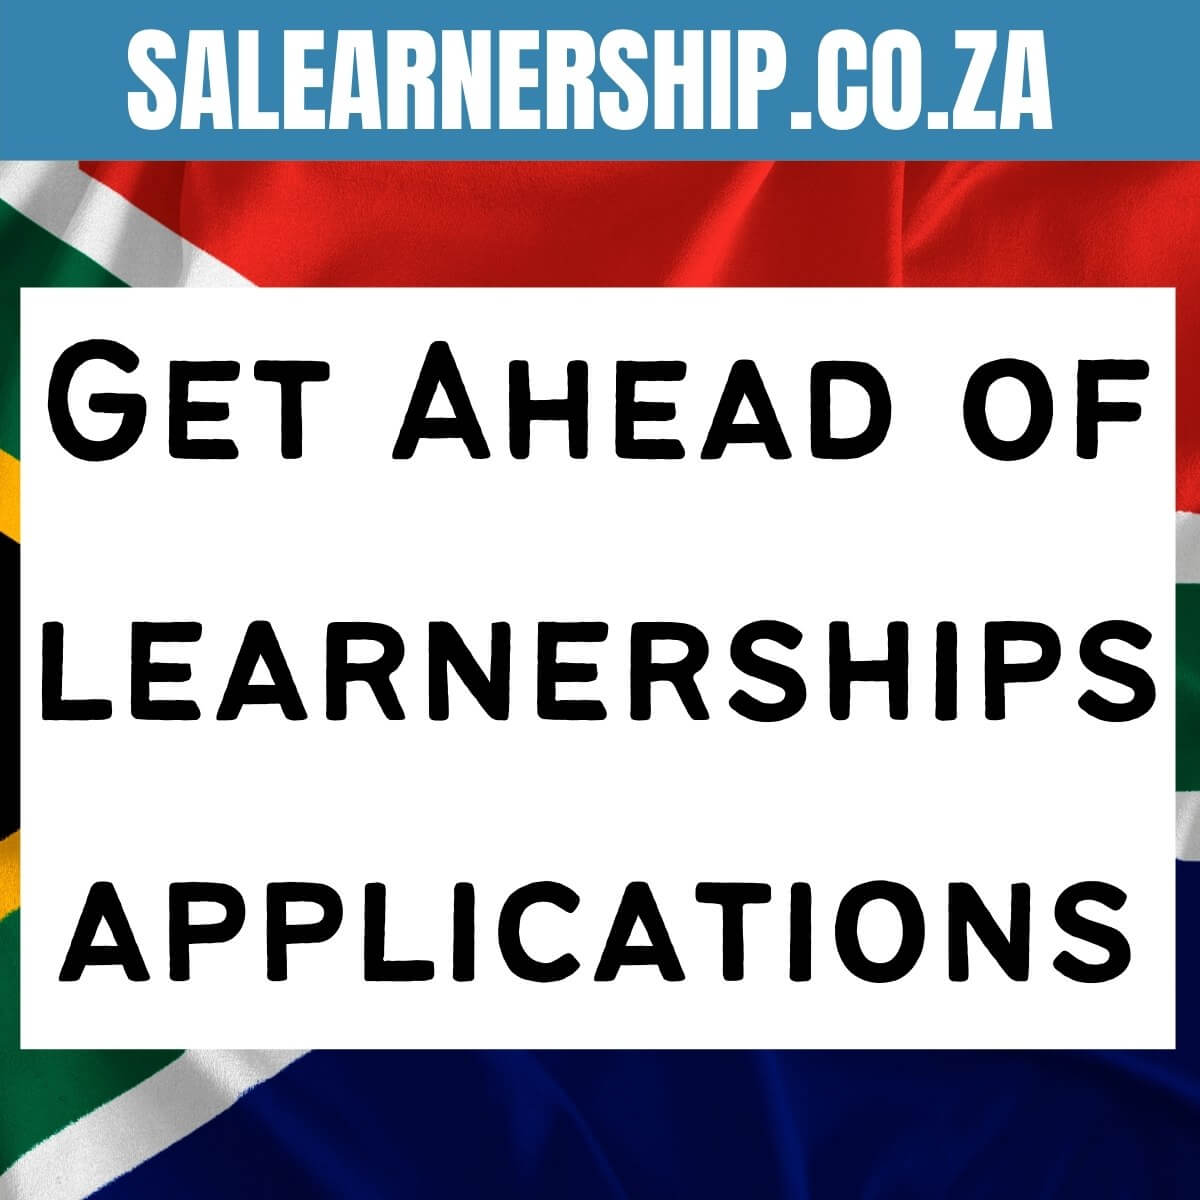 get ahead of learnerships applications